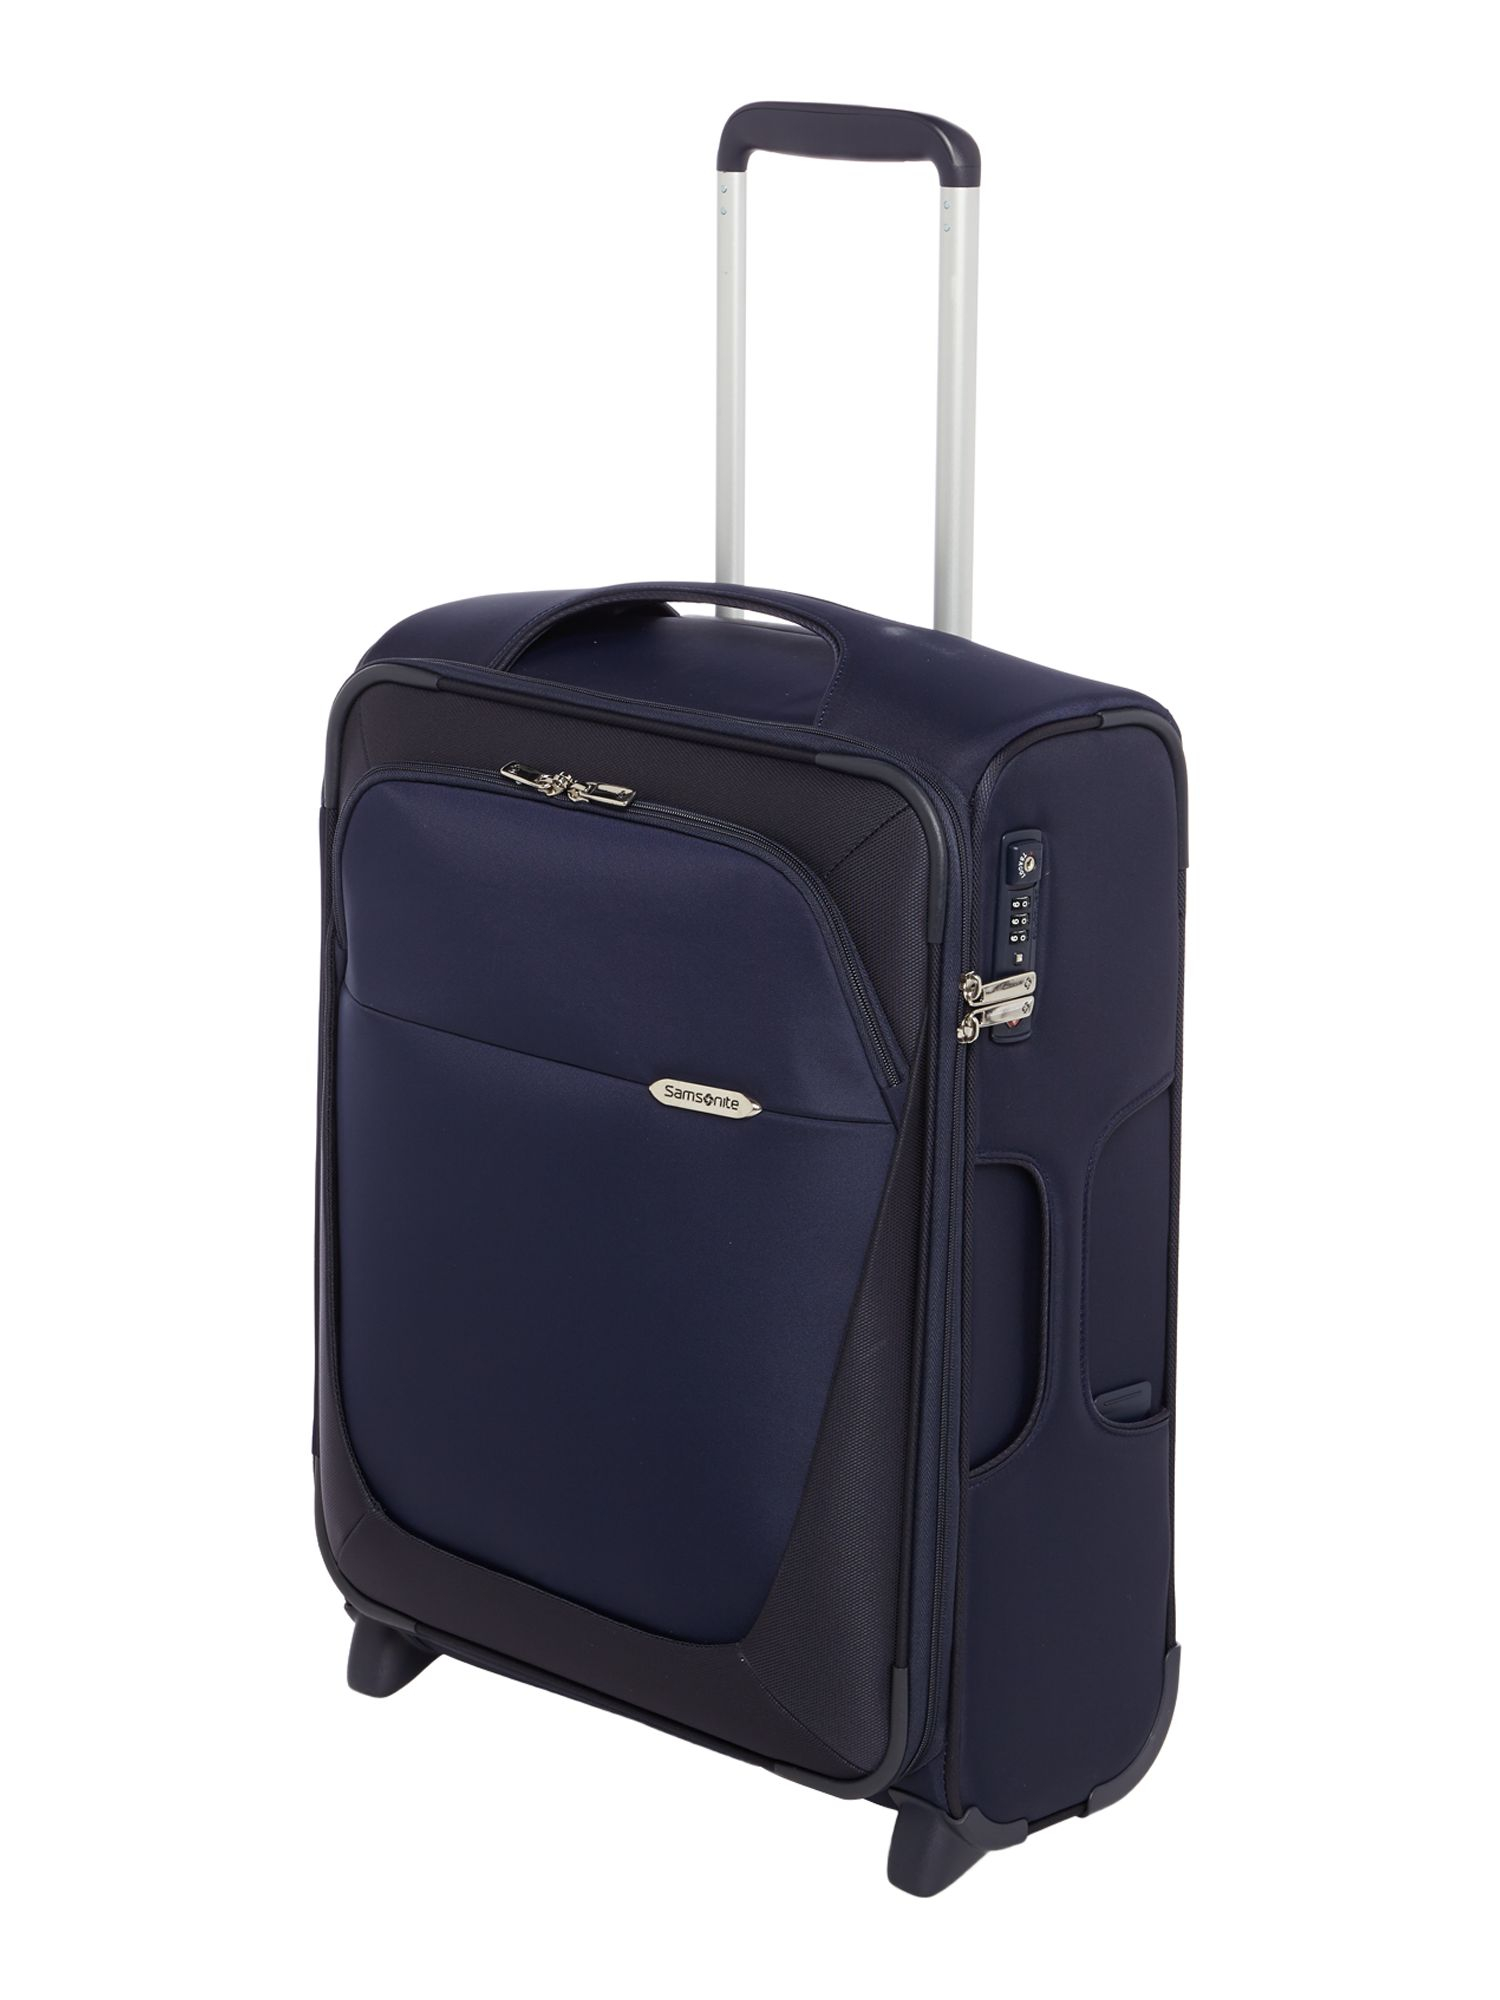 Samsonite Lightweight Cabin Luggage | Luggage And Suitcases